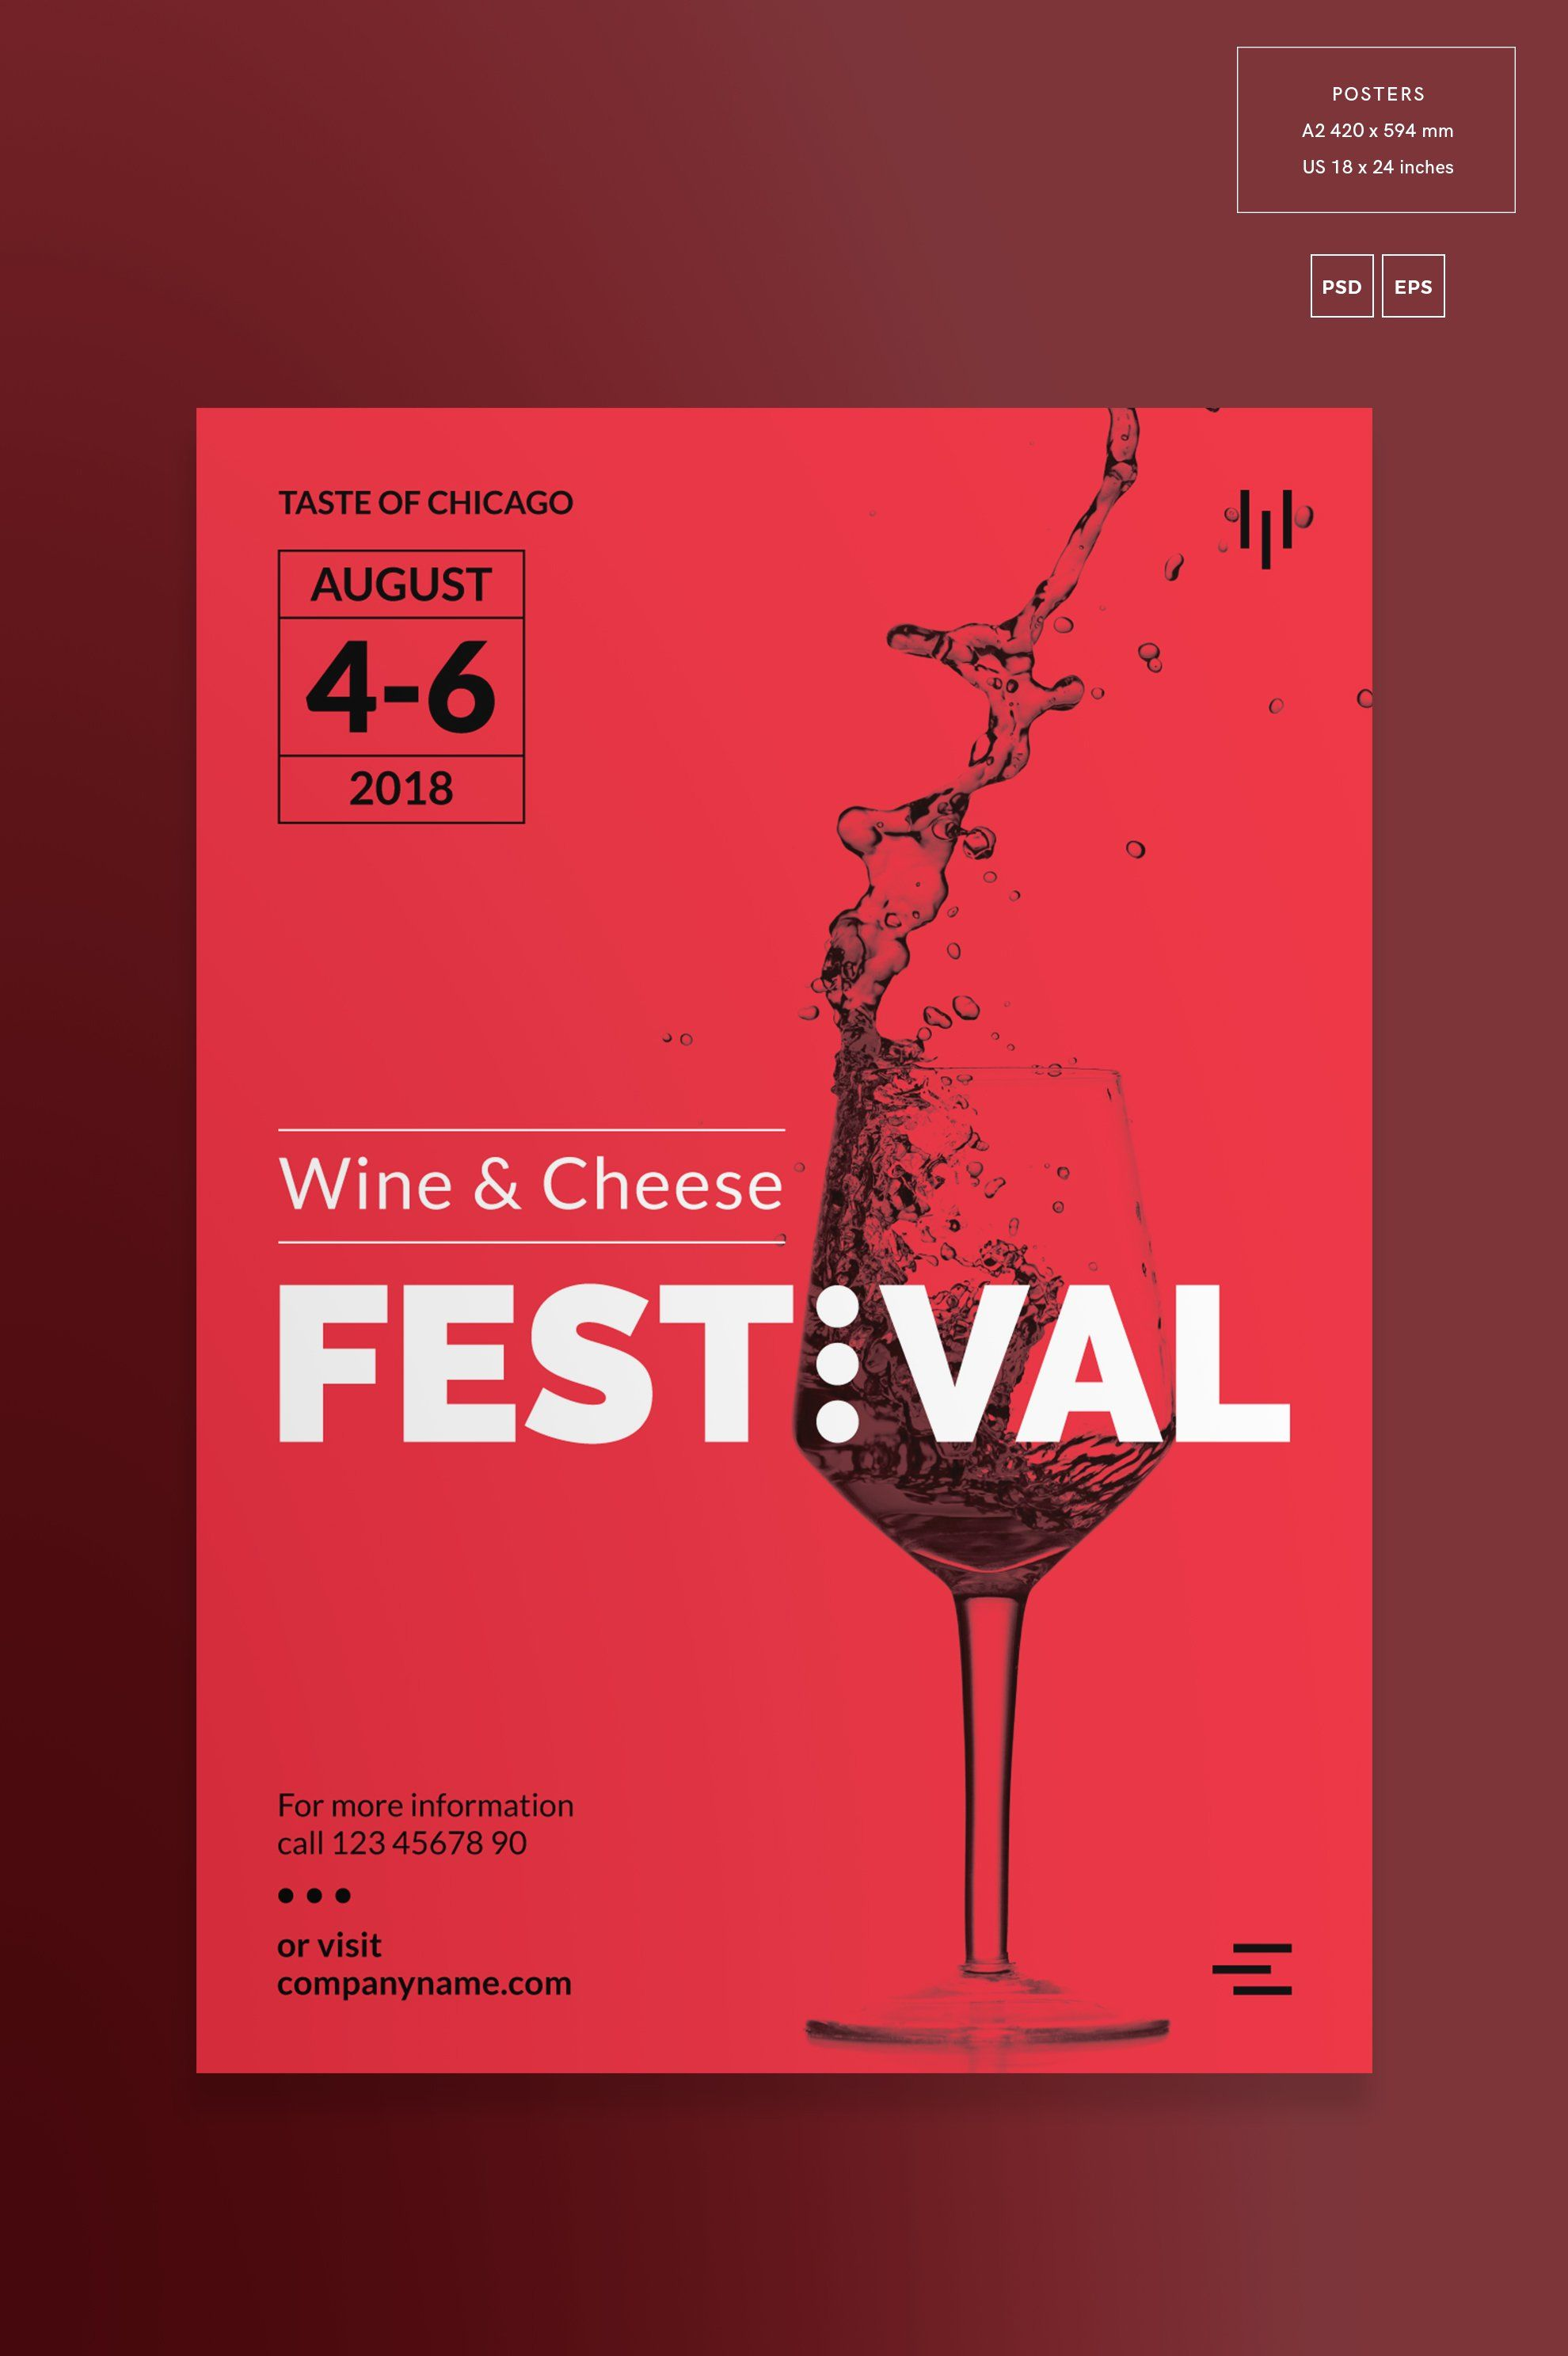 Promo Bundle Wine Festival With Images Poster Template Wine Festival Etsy Shop Banner